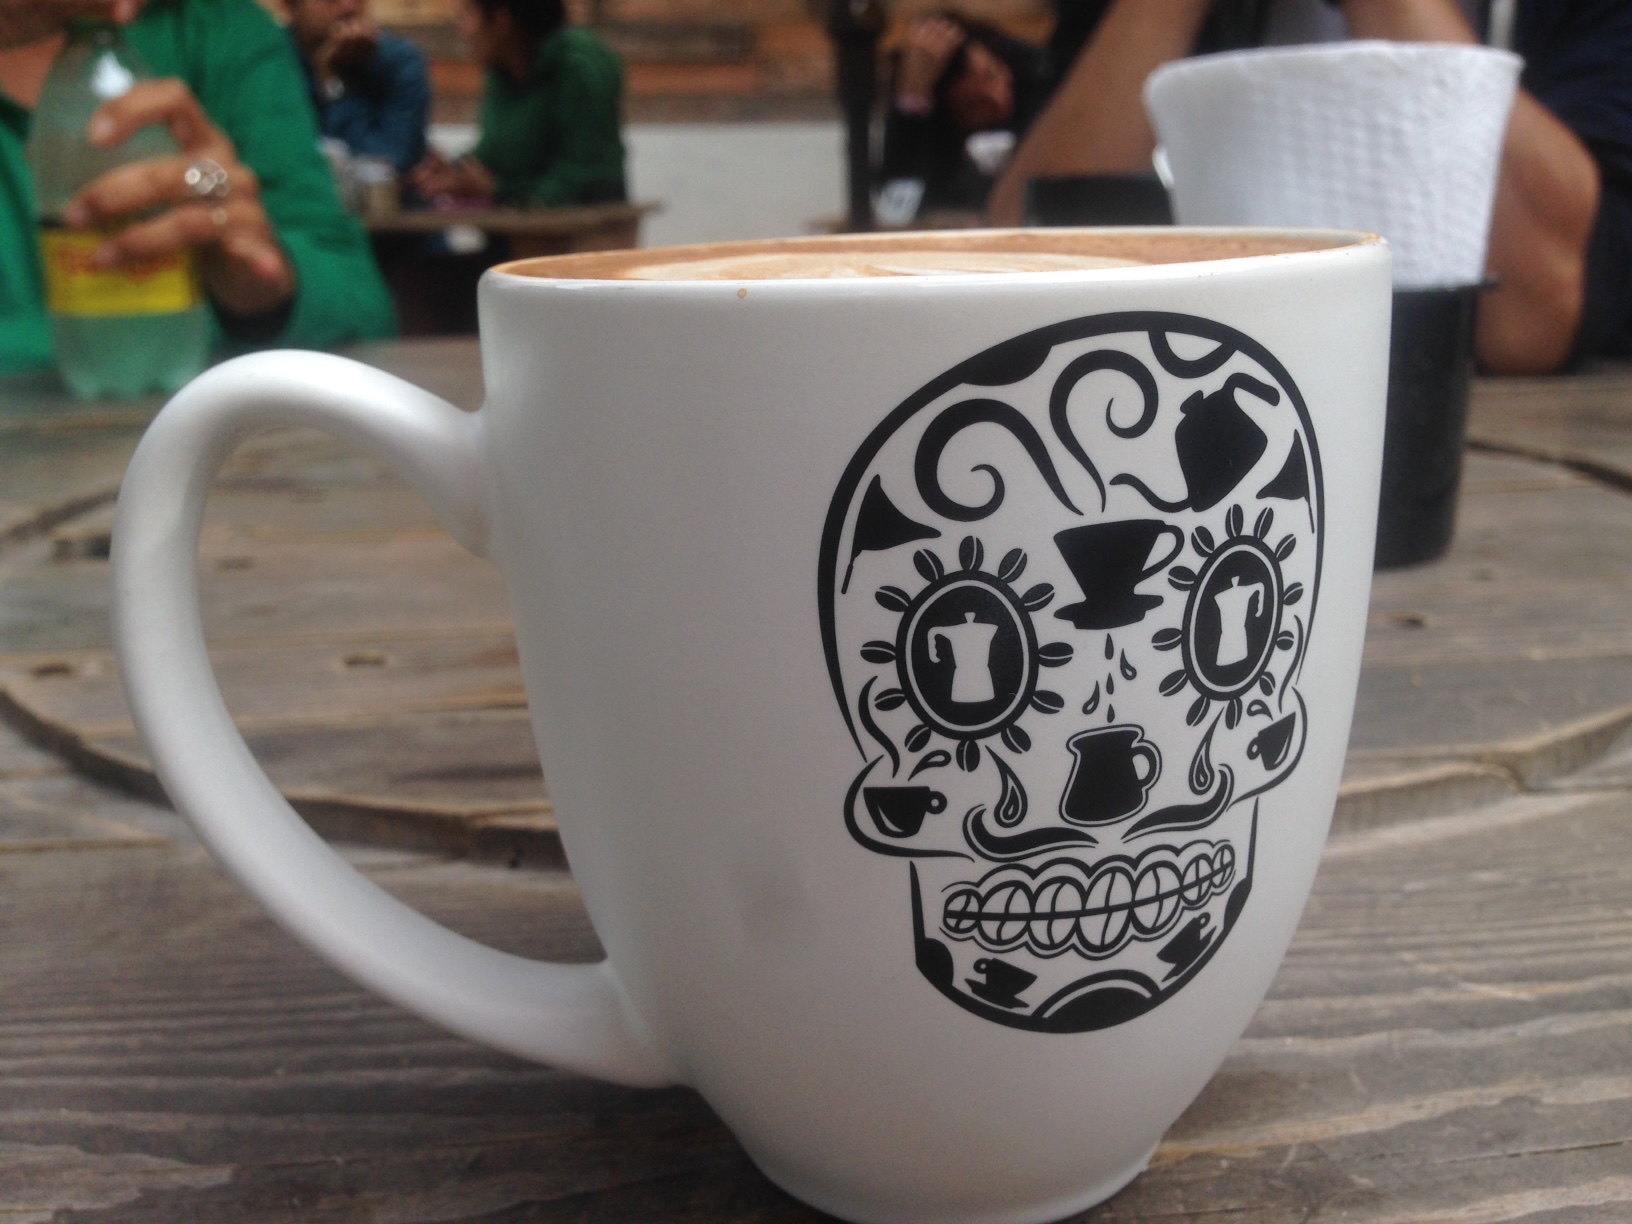 Love the logo at Doce Cuarenta, so much great Day of the Dead skull art in Baja.